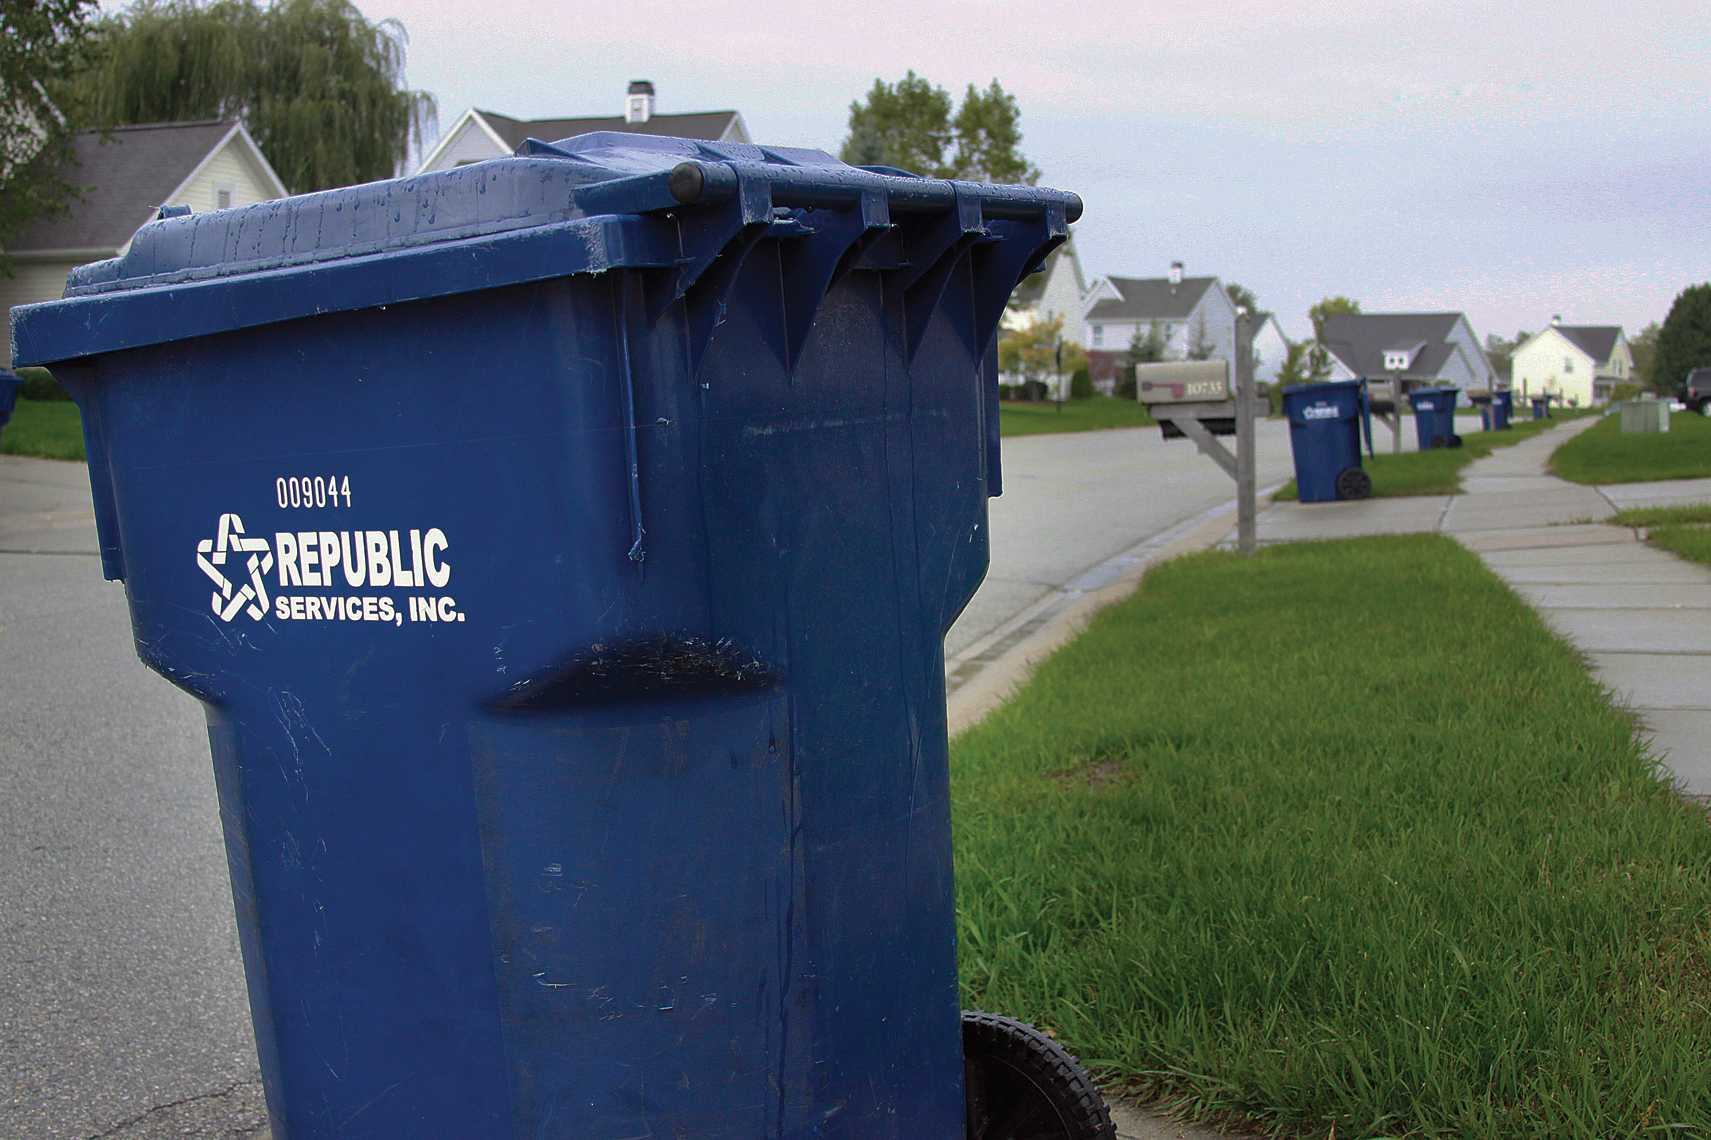 Long Branch Estates has its neighborhood trash pick-up every Thursday. Once city-wide recycling begins, all Carmel residents can begin recycling various materials together without sorting them.